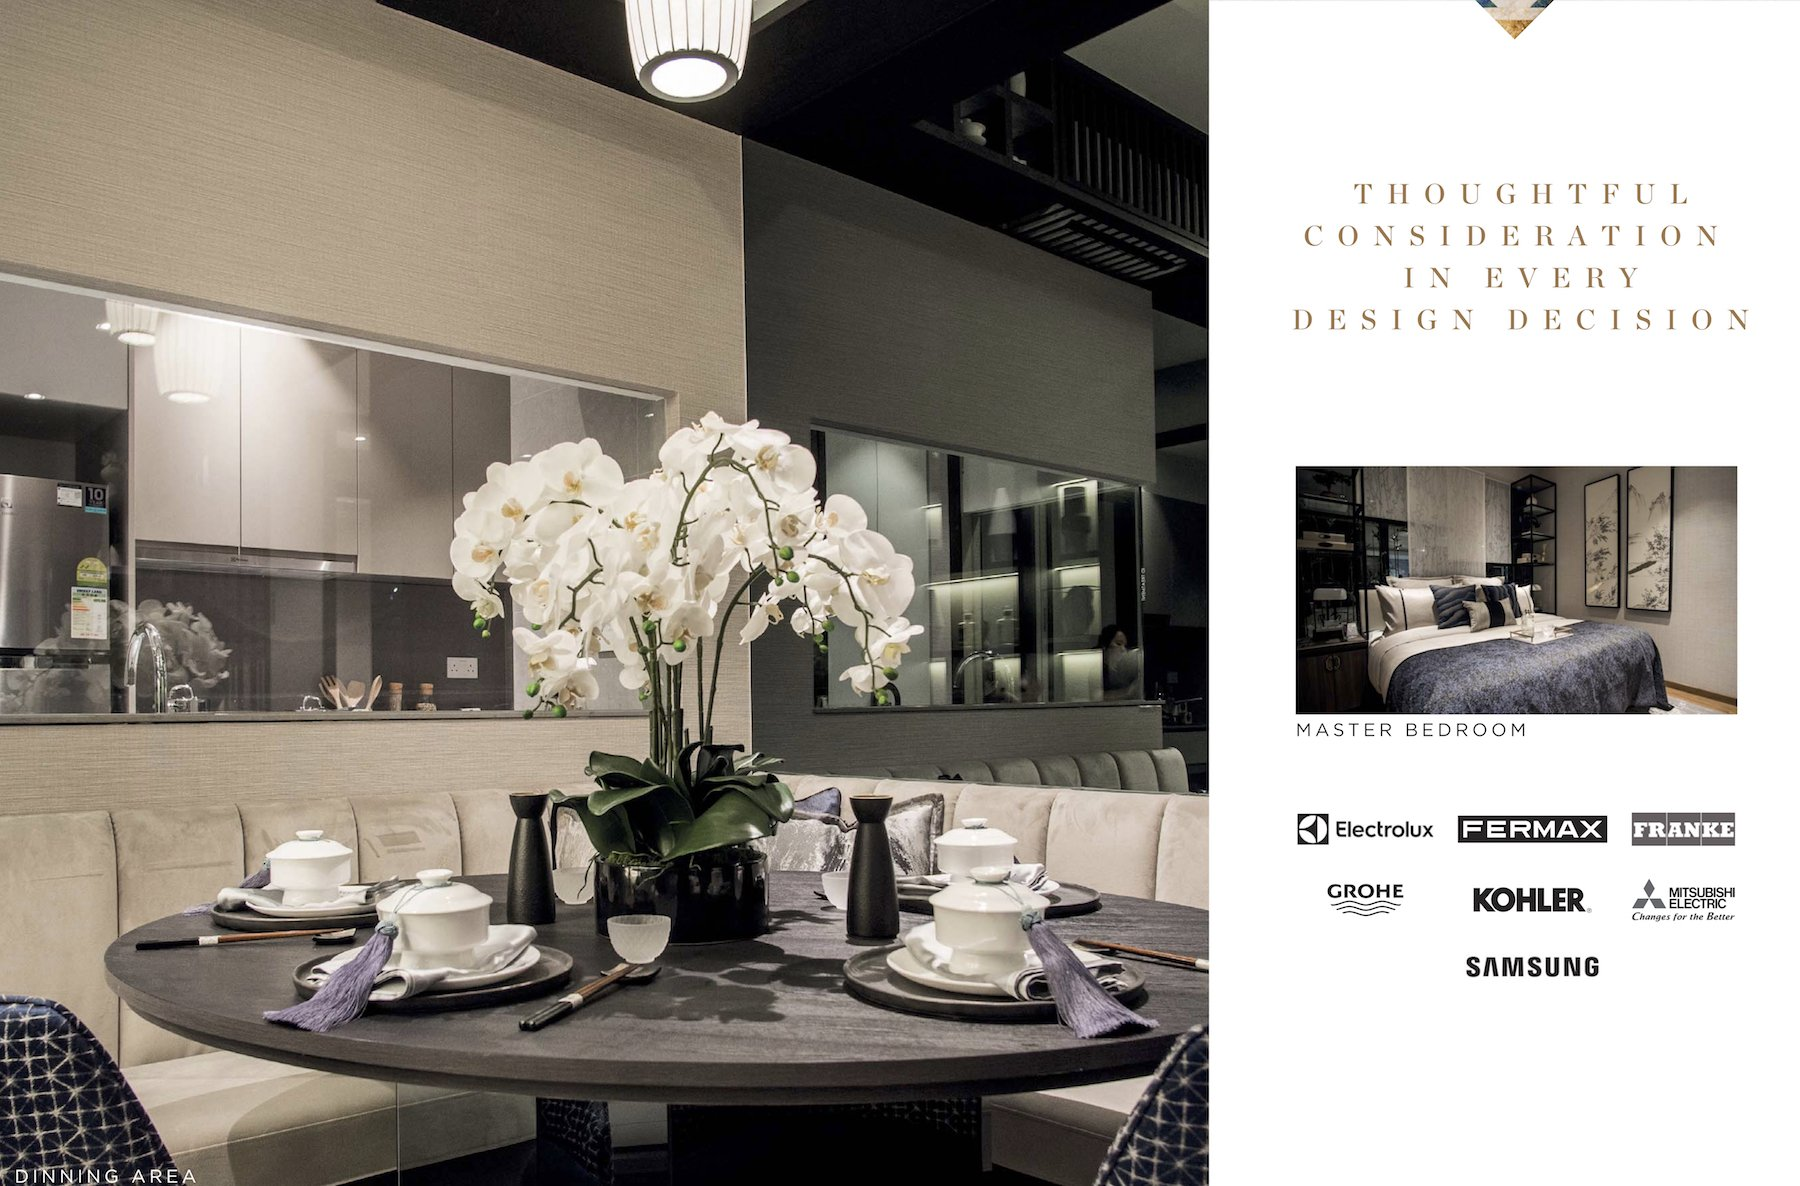 Parc Clematis 锦泰门第 contemporary dining furnishes